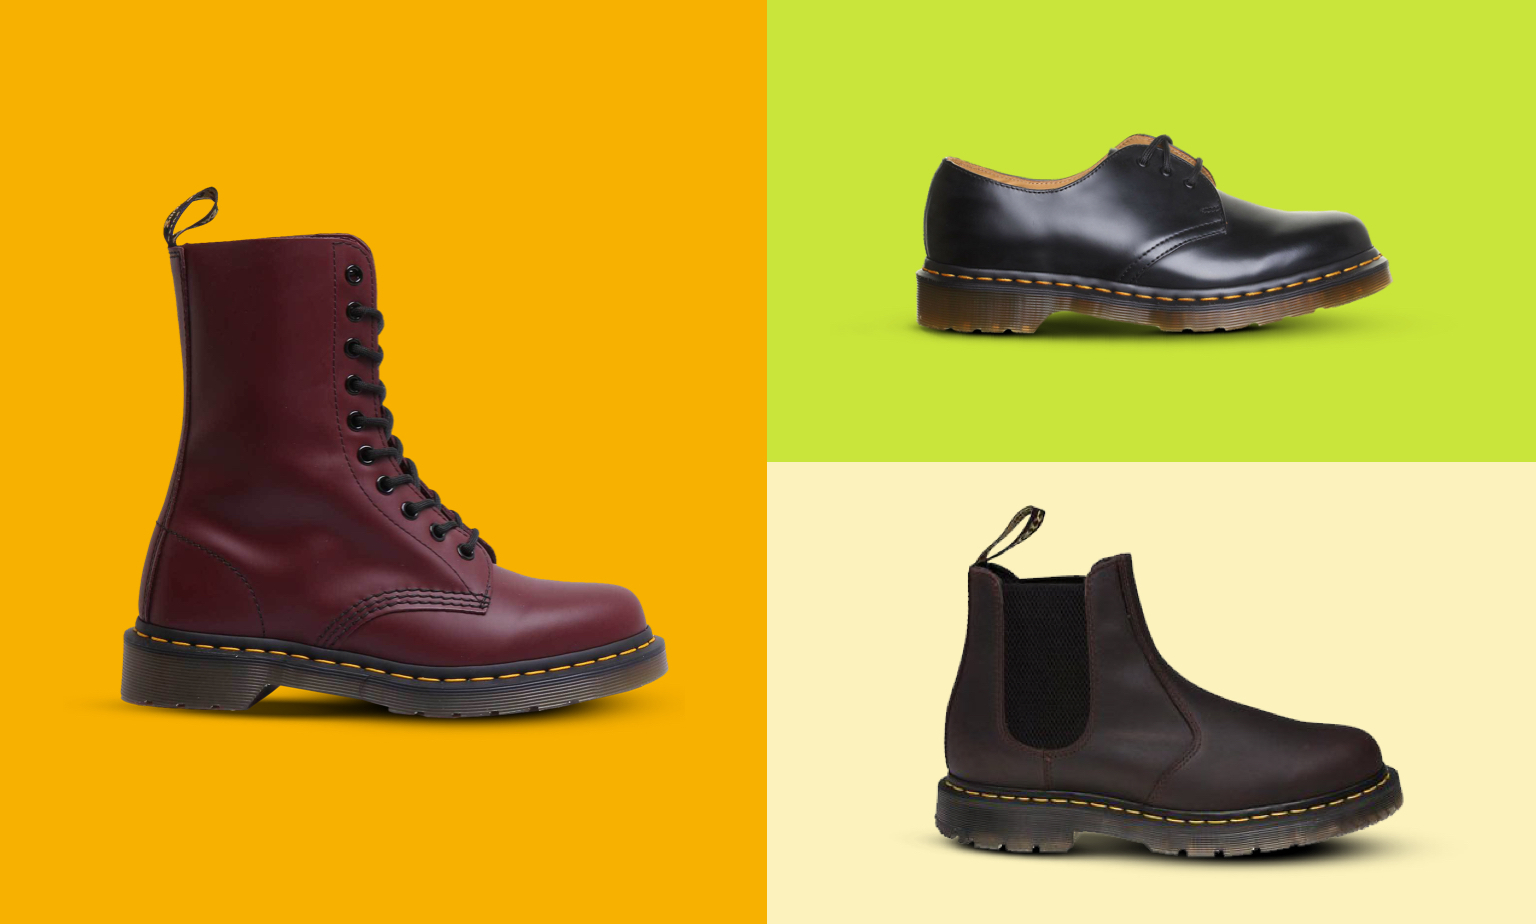 Dr. Martens Styles From £50